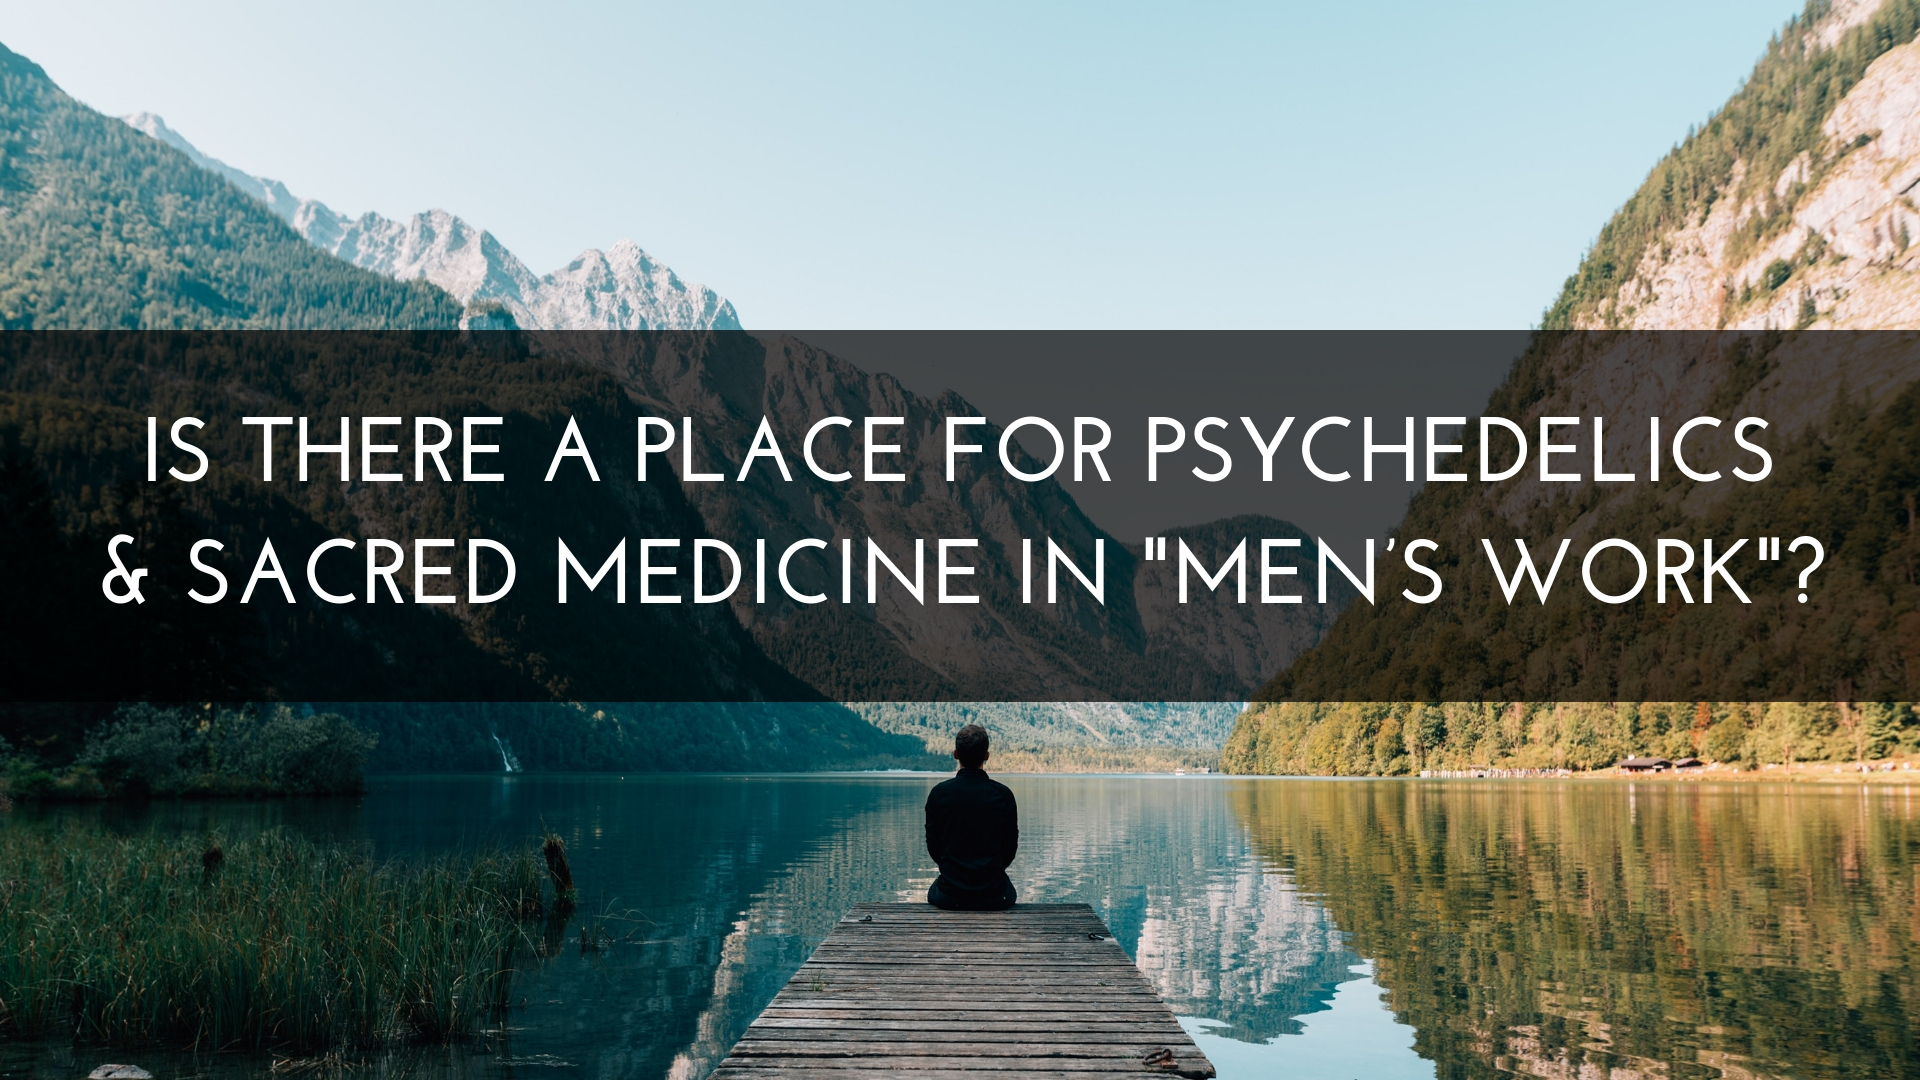 Is there a place for psychedelics and sacred medicine in mens work